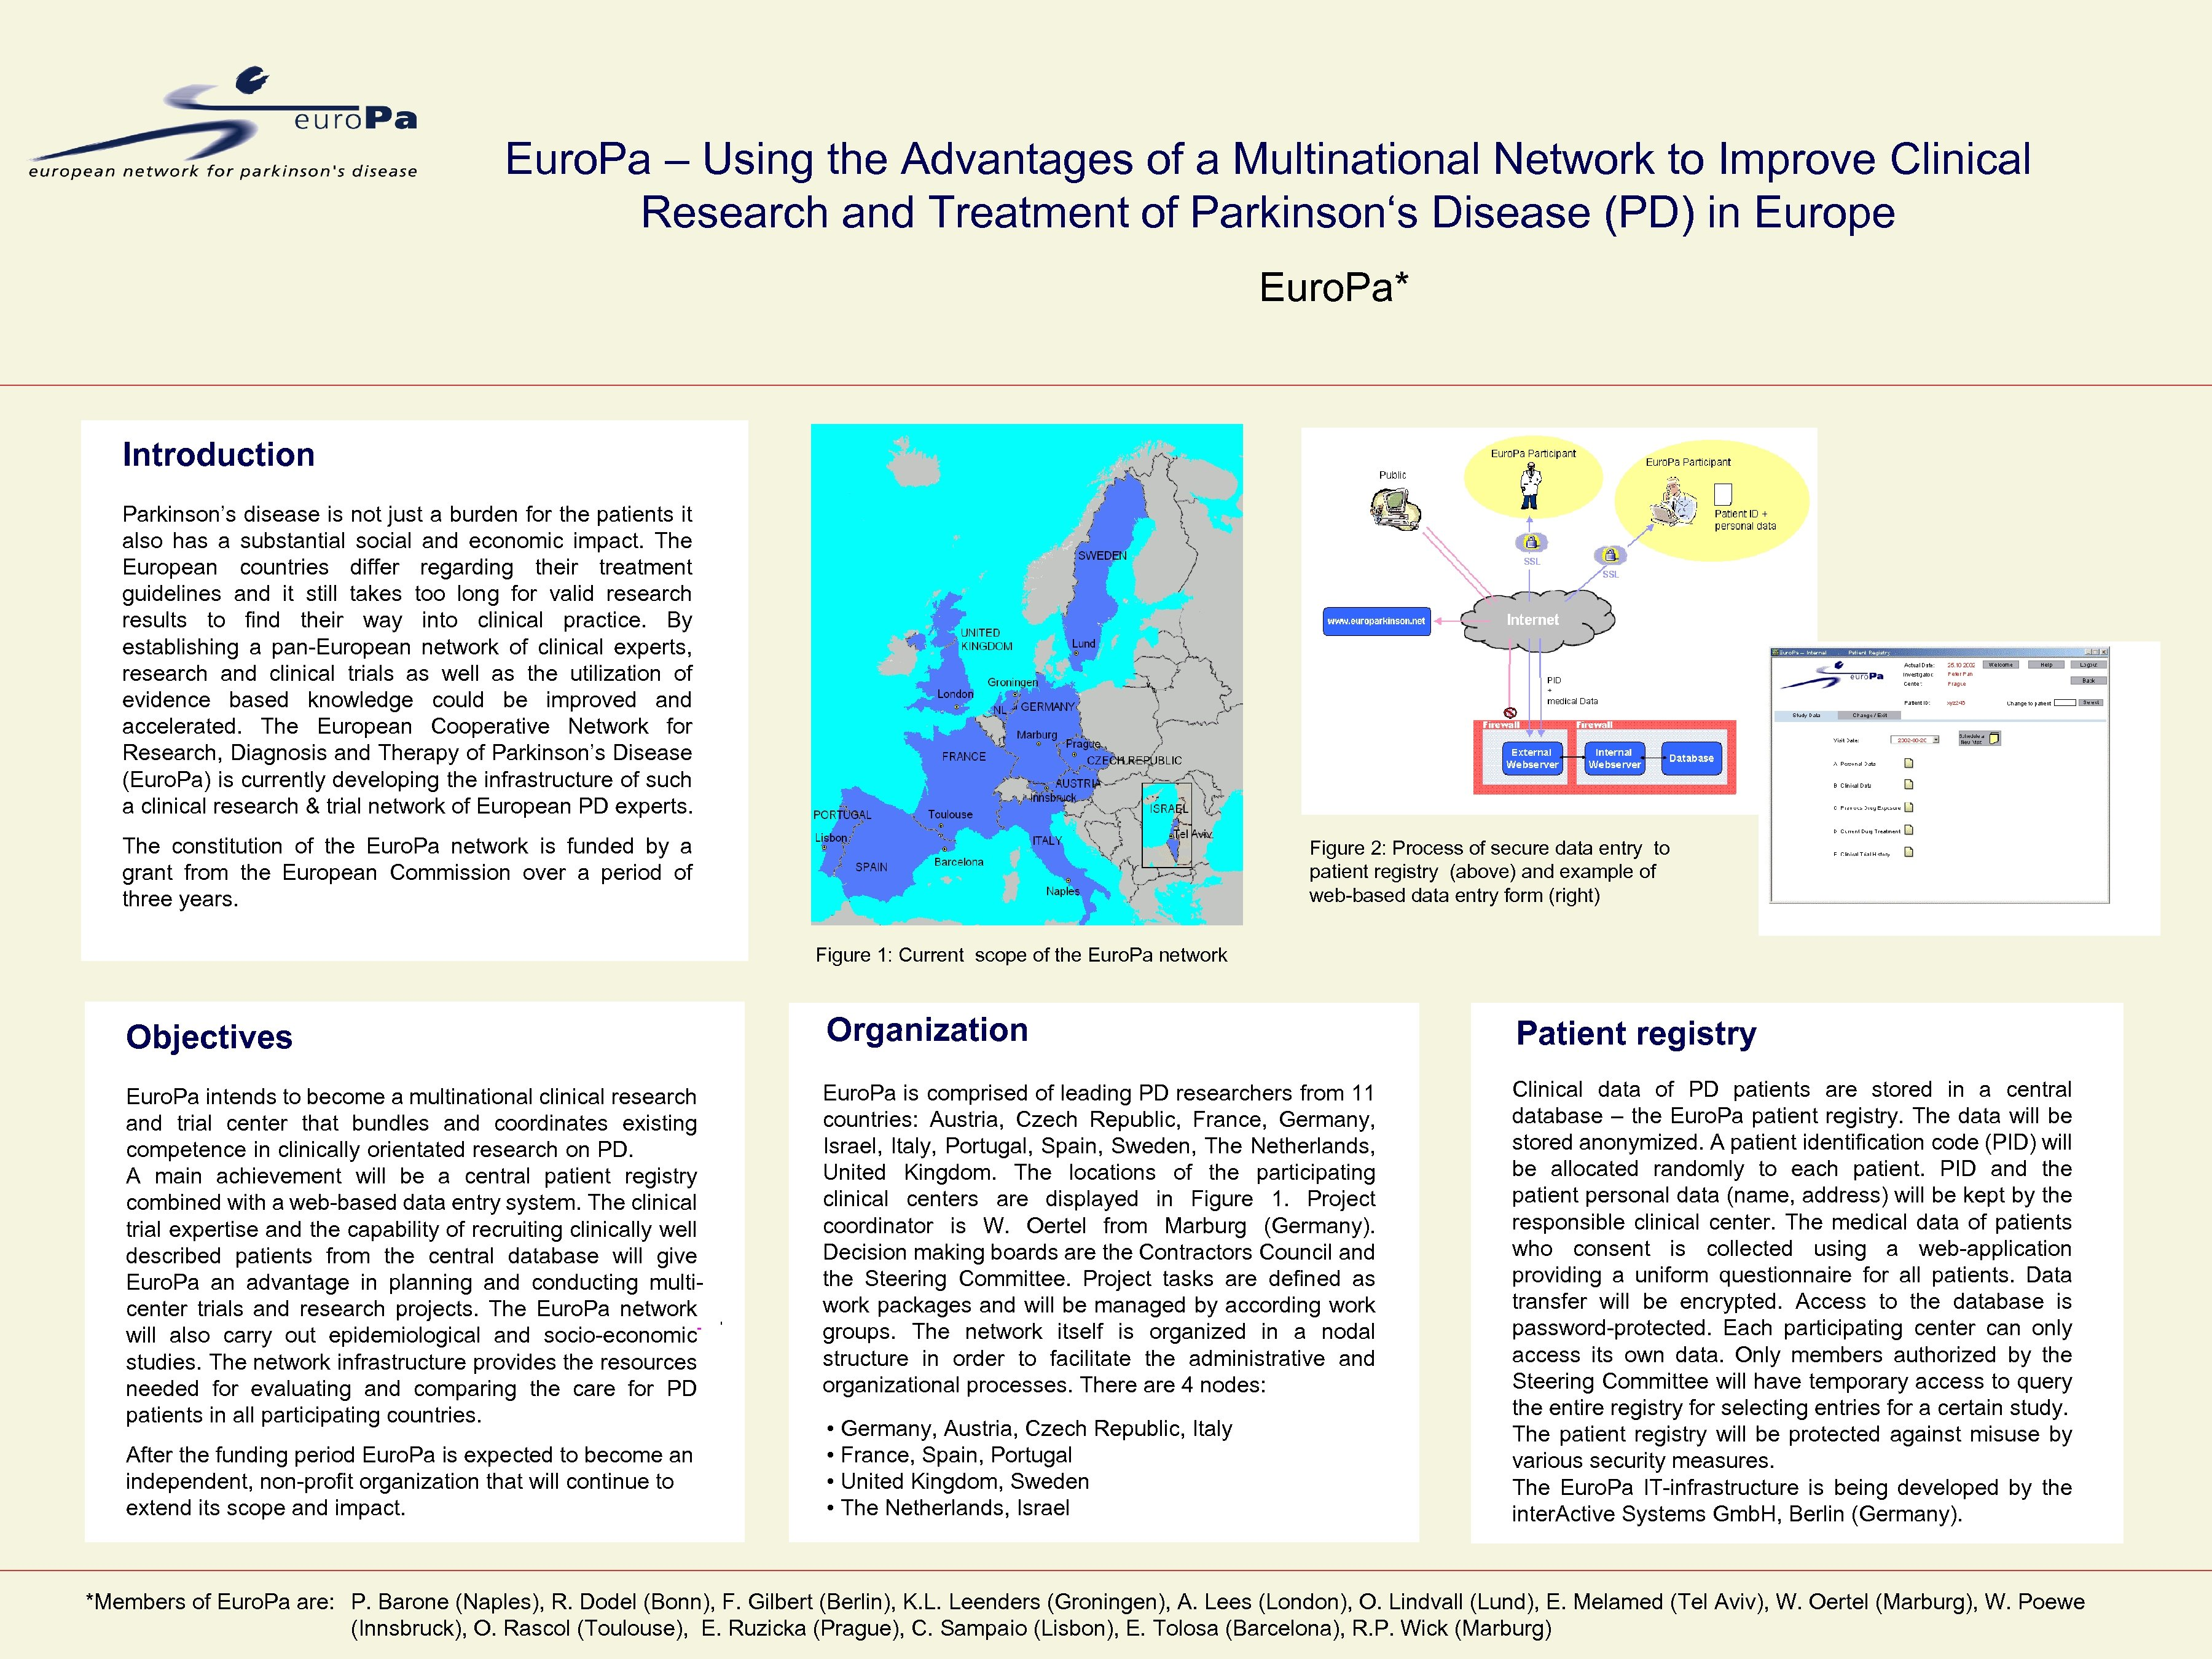 Euro. Pa – Using the Advantages of a Multinational Network to Improve Clinical Research